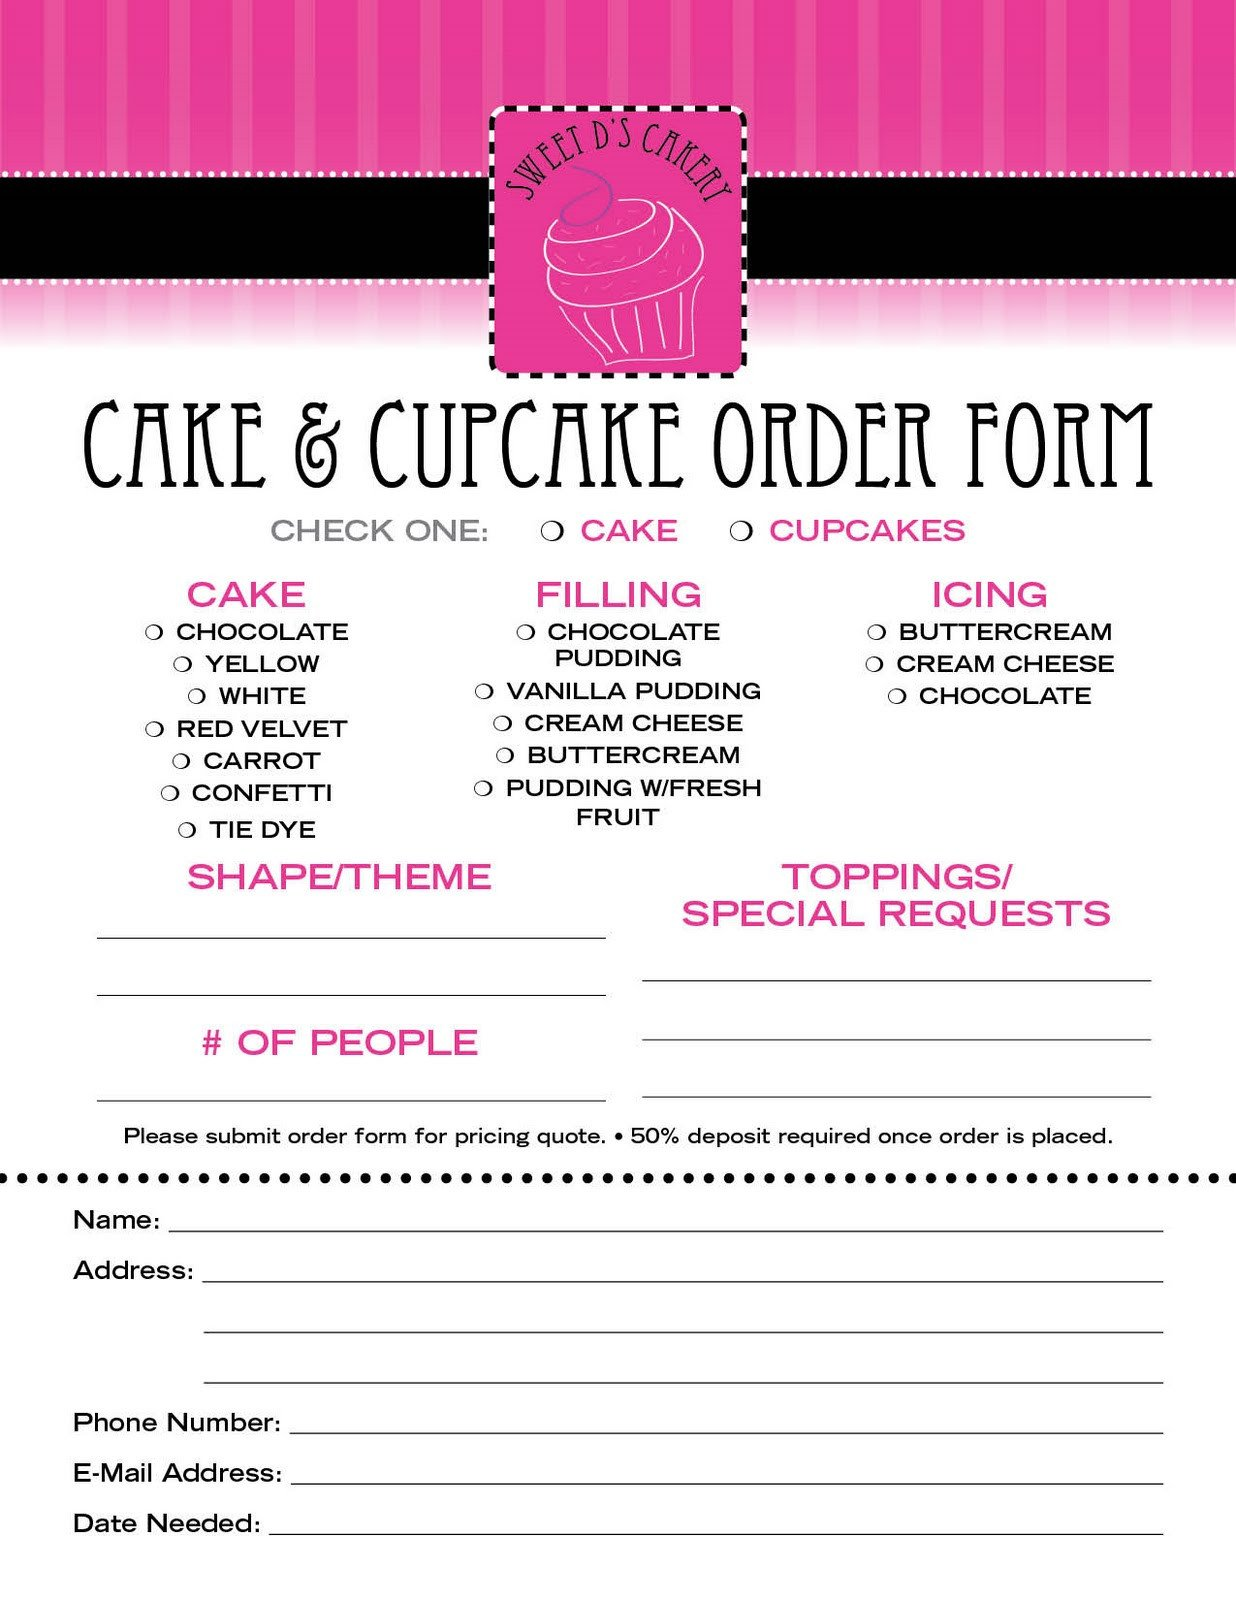 Cake order form Templates Sweet D S Cakery Download Our order form Here